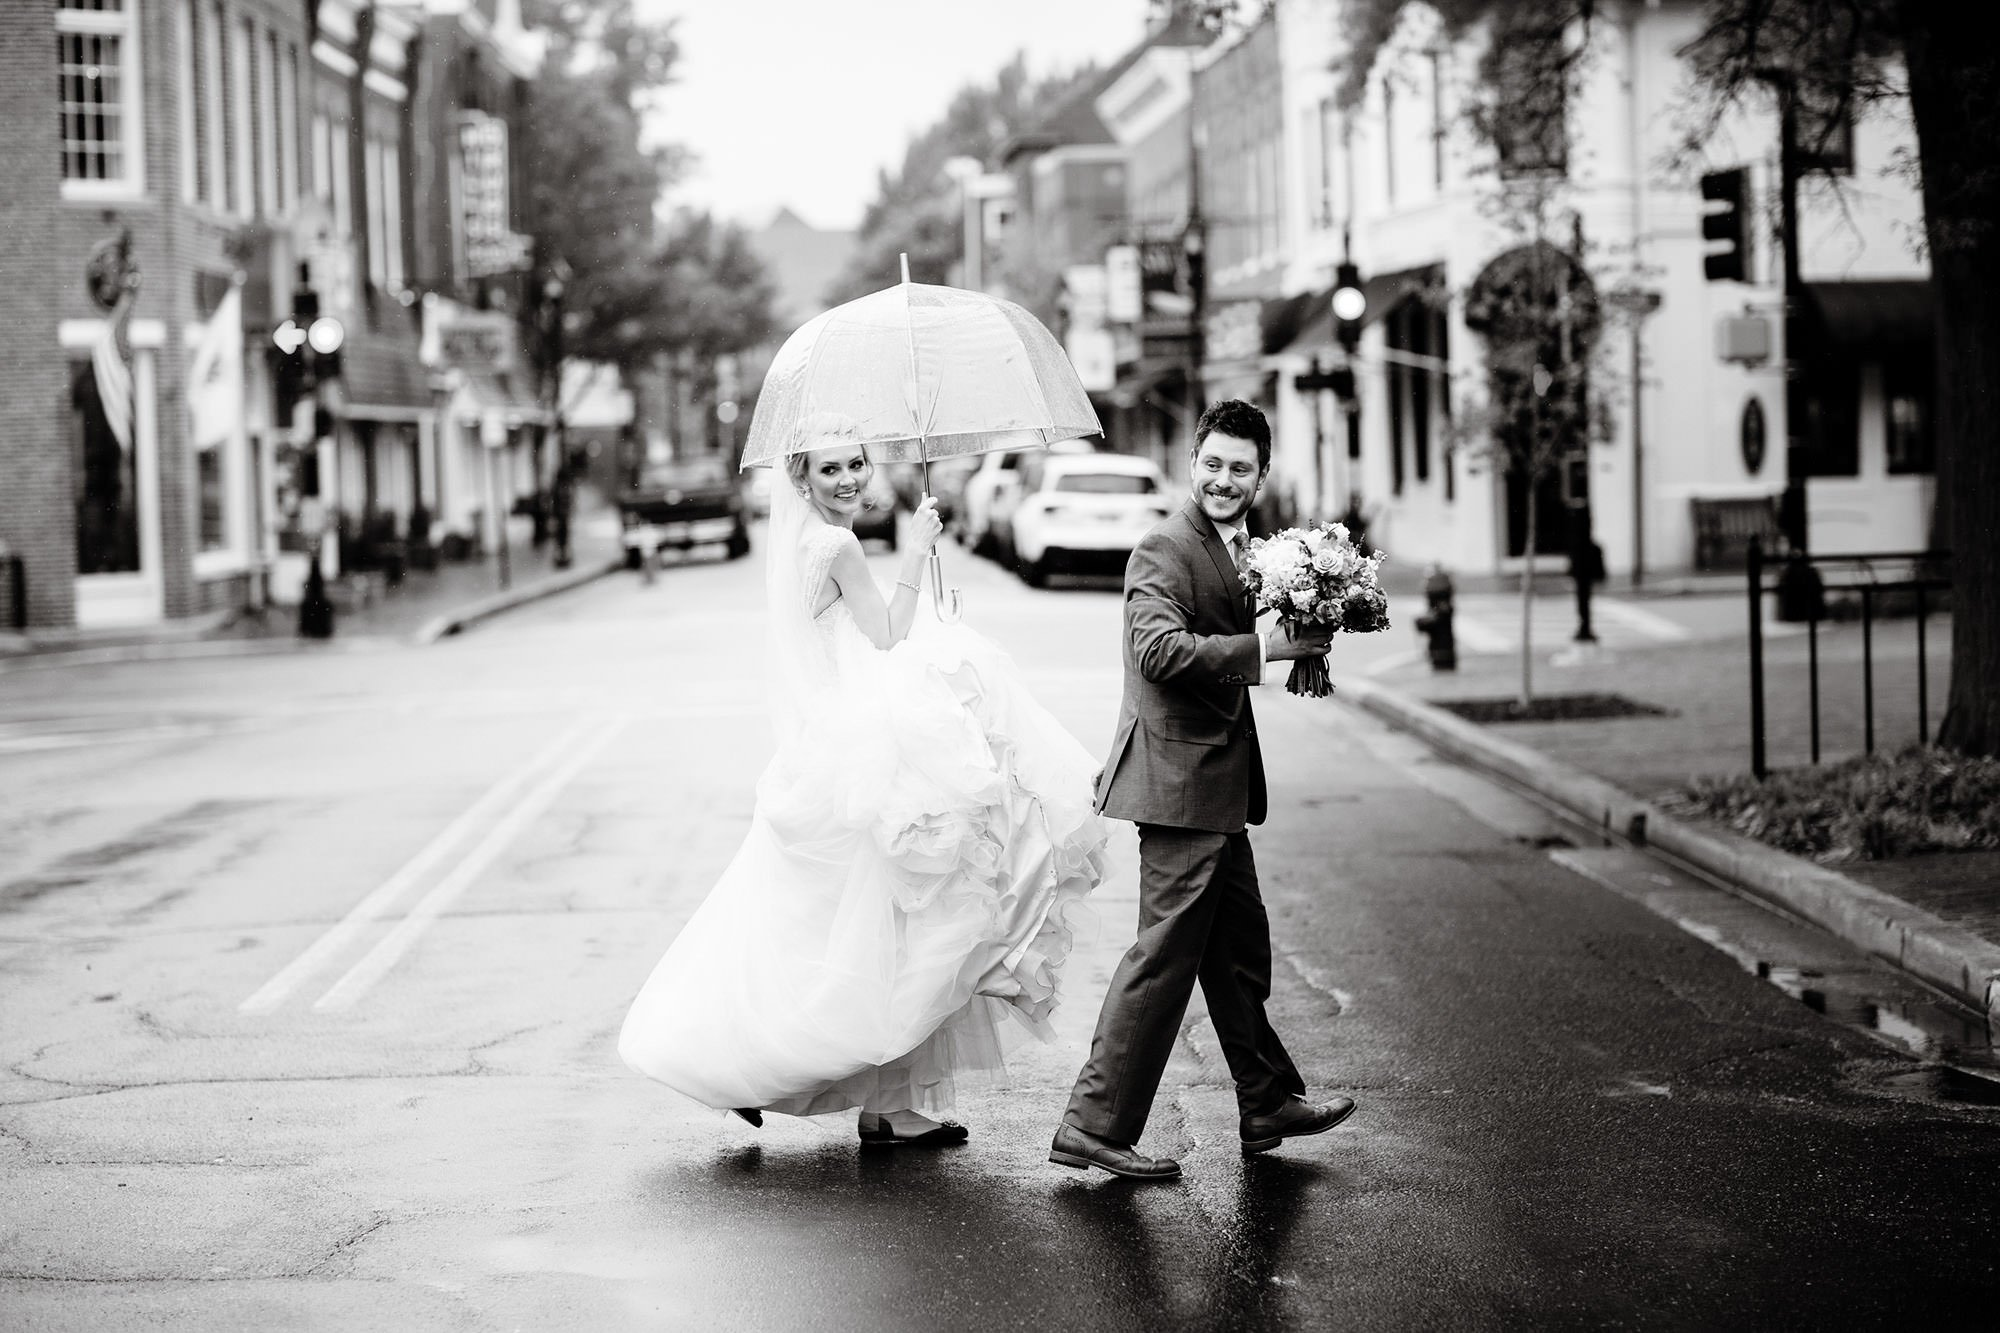 The bride and groom cross the street in Easton, MD before their wedding reception at Tidewater Inn.